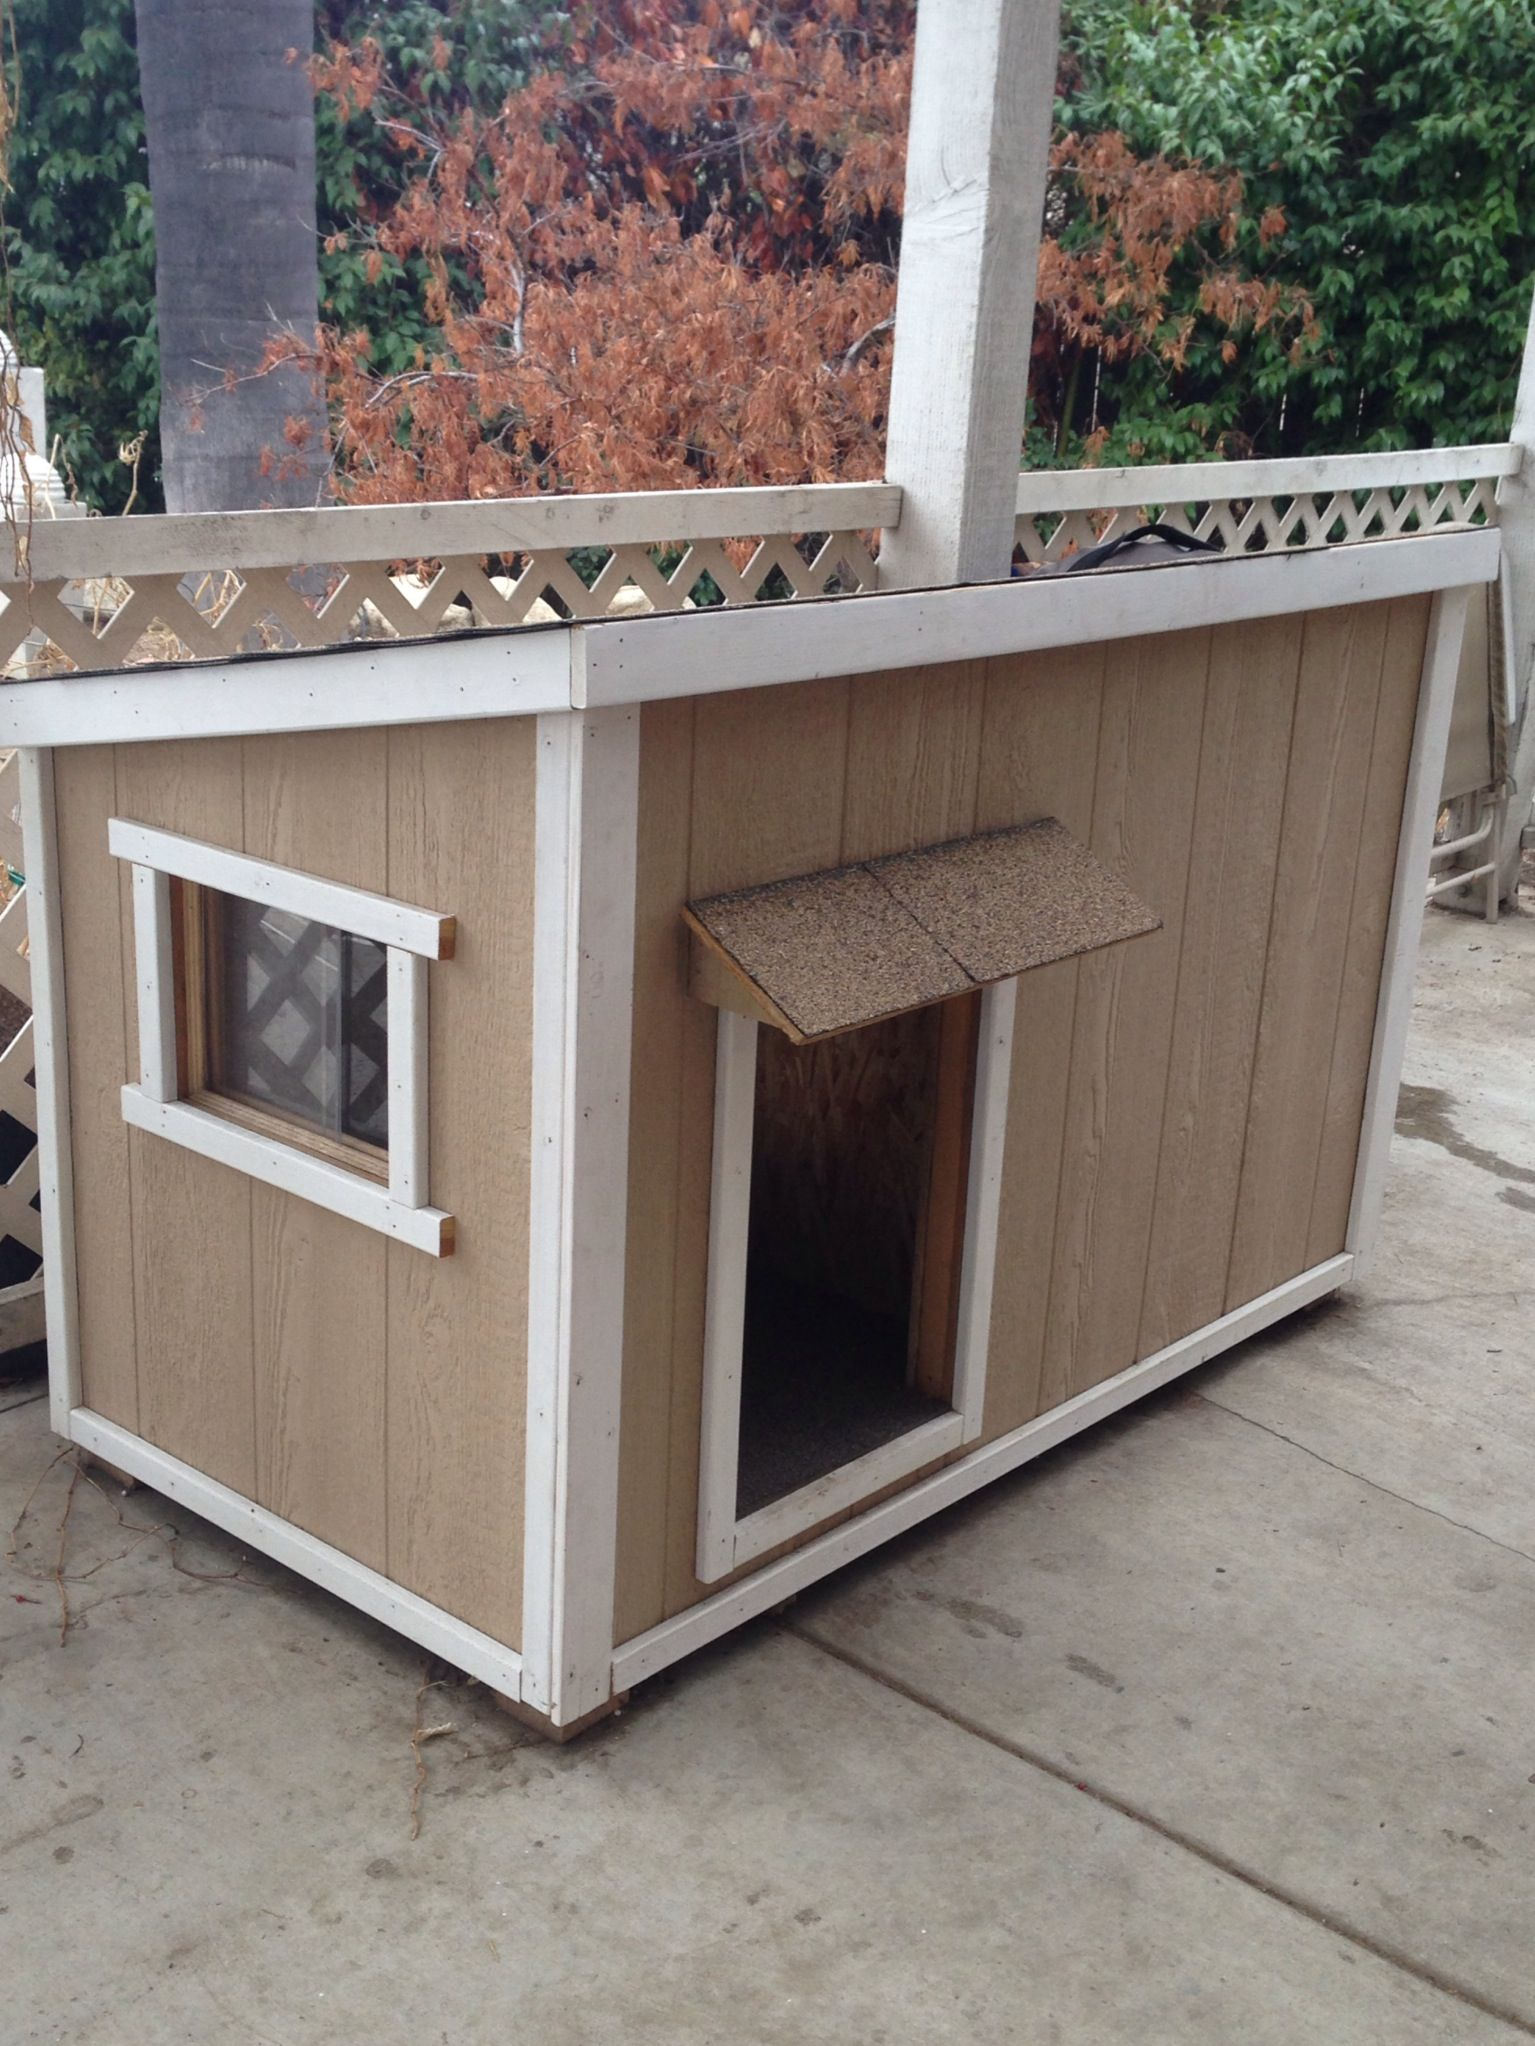 Home Made Dog House My Husband Built With A Sliding Window